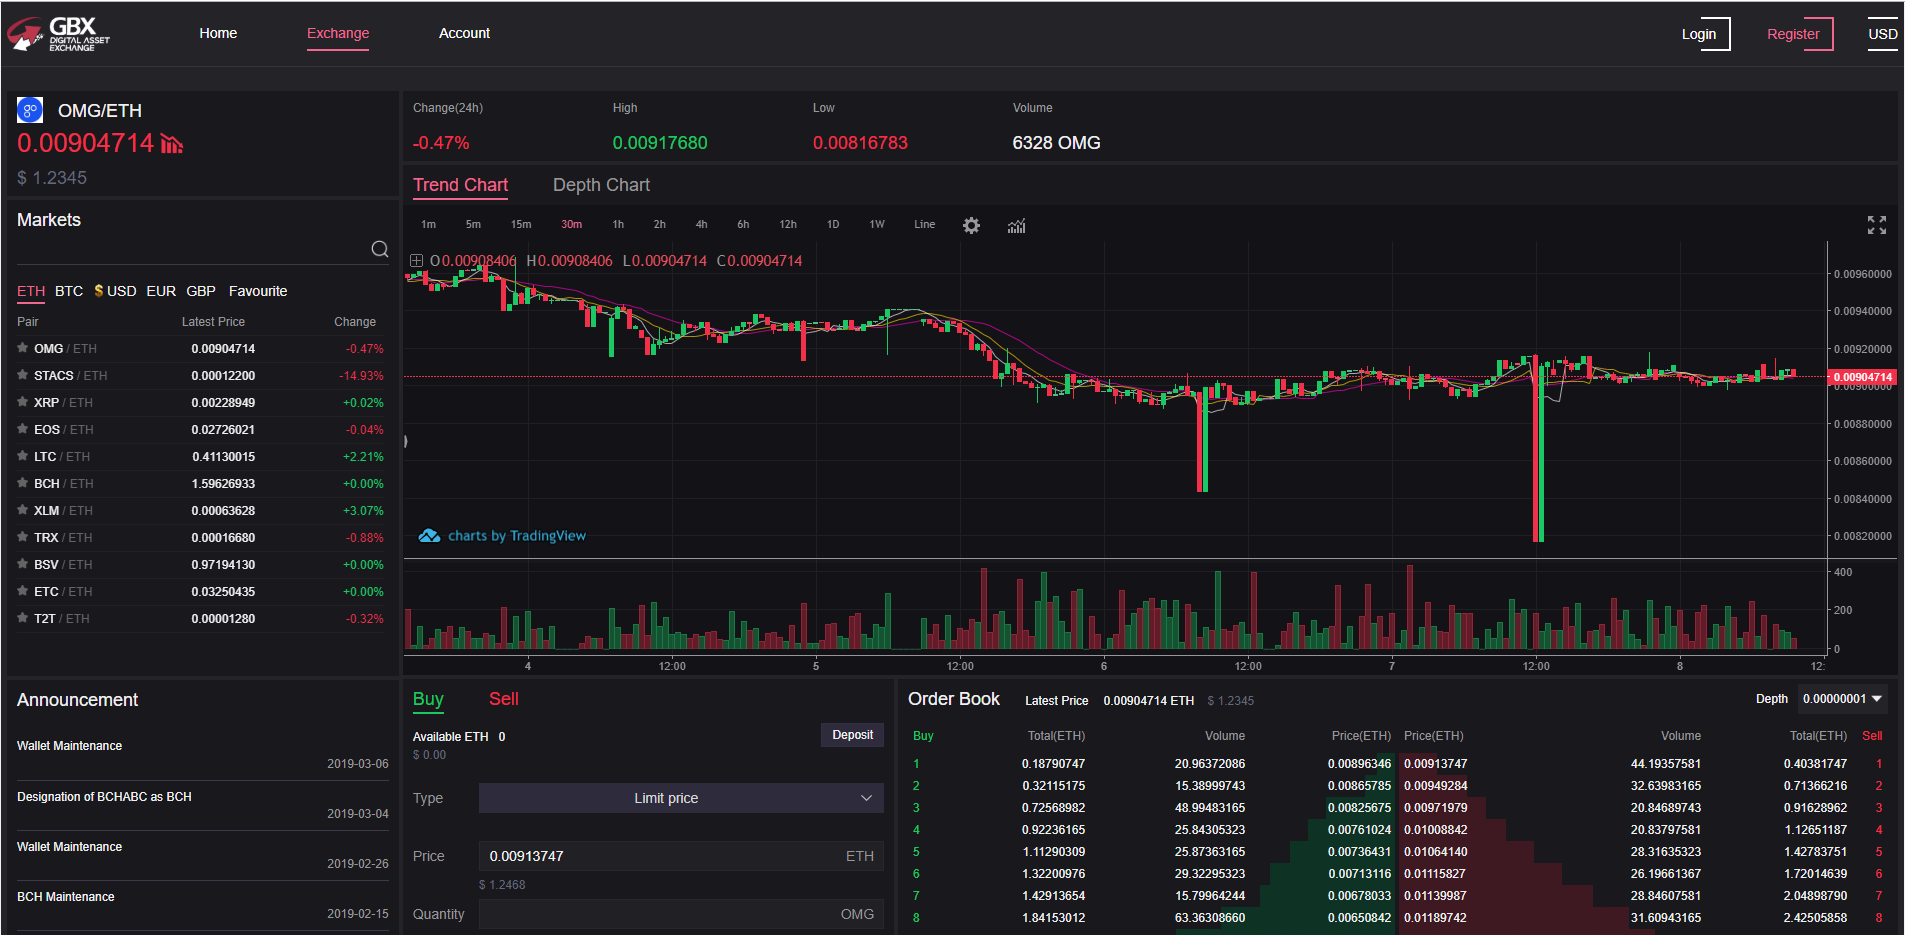 GBX Digital Asset Exchange Trading View